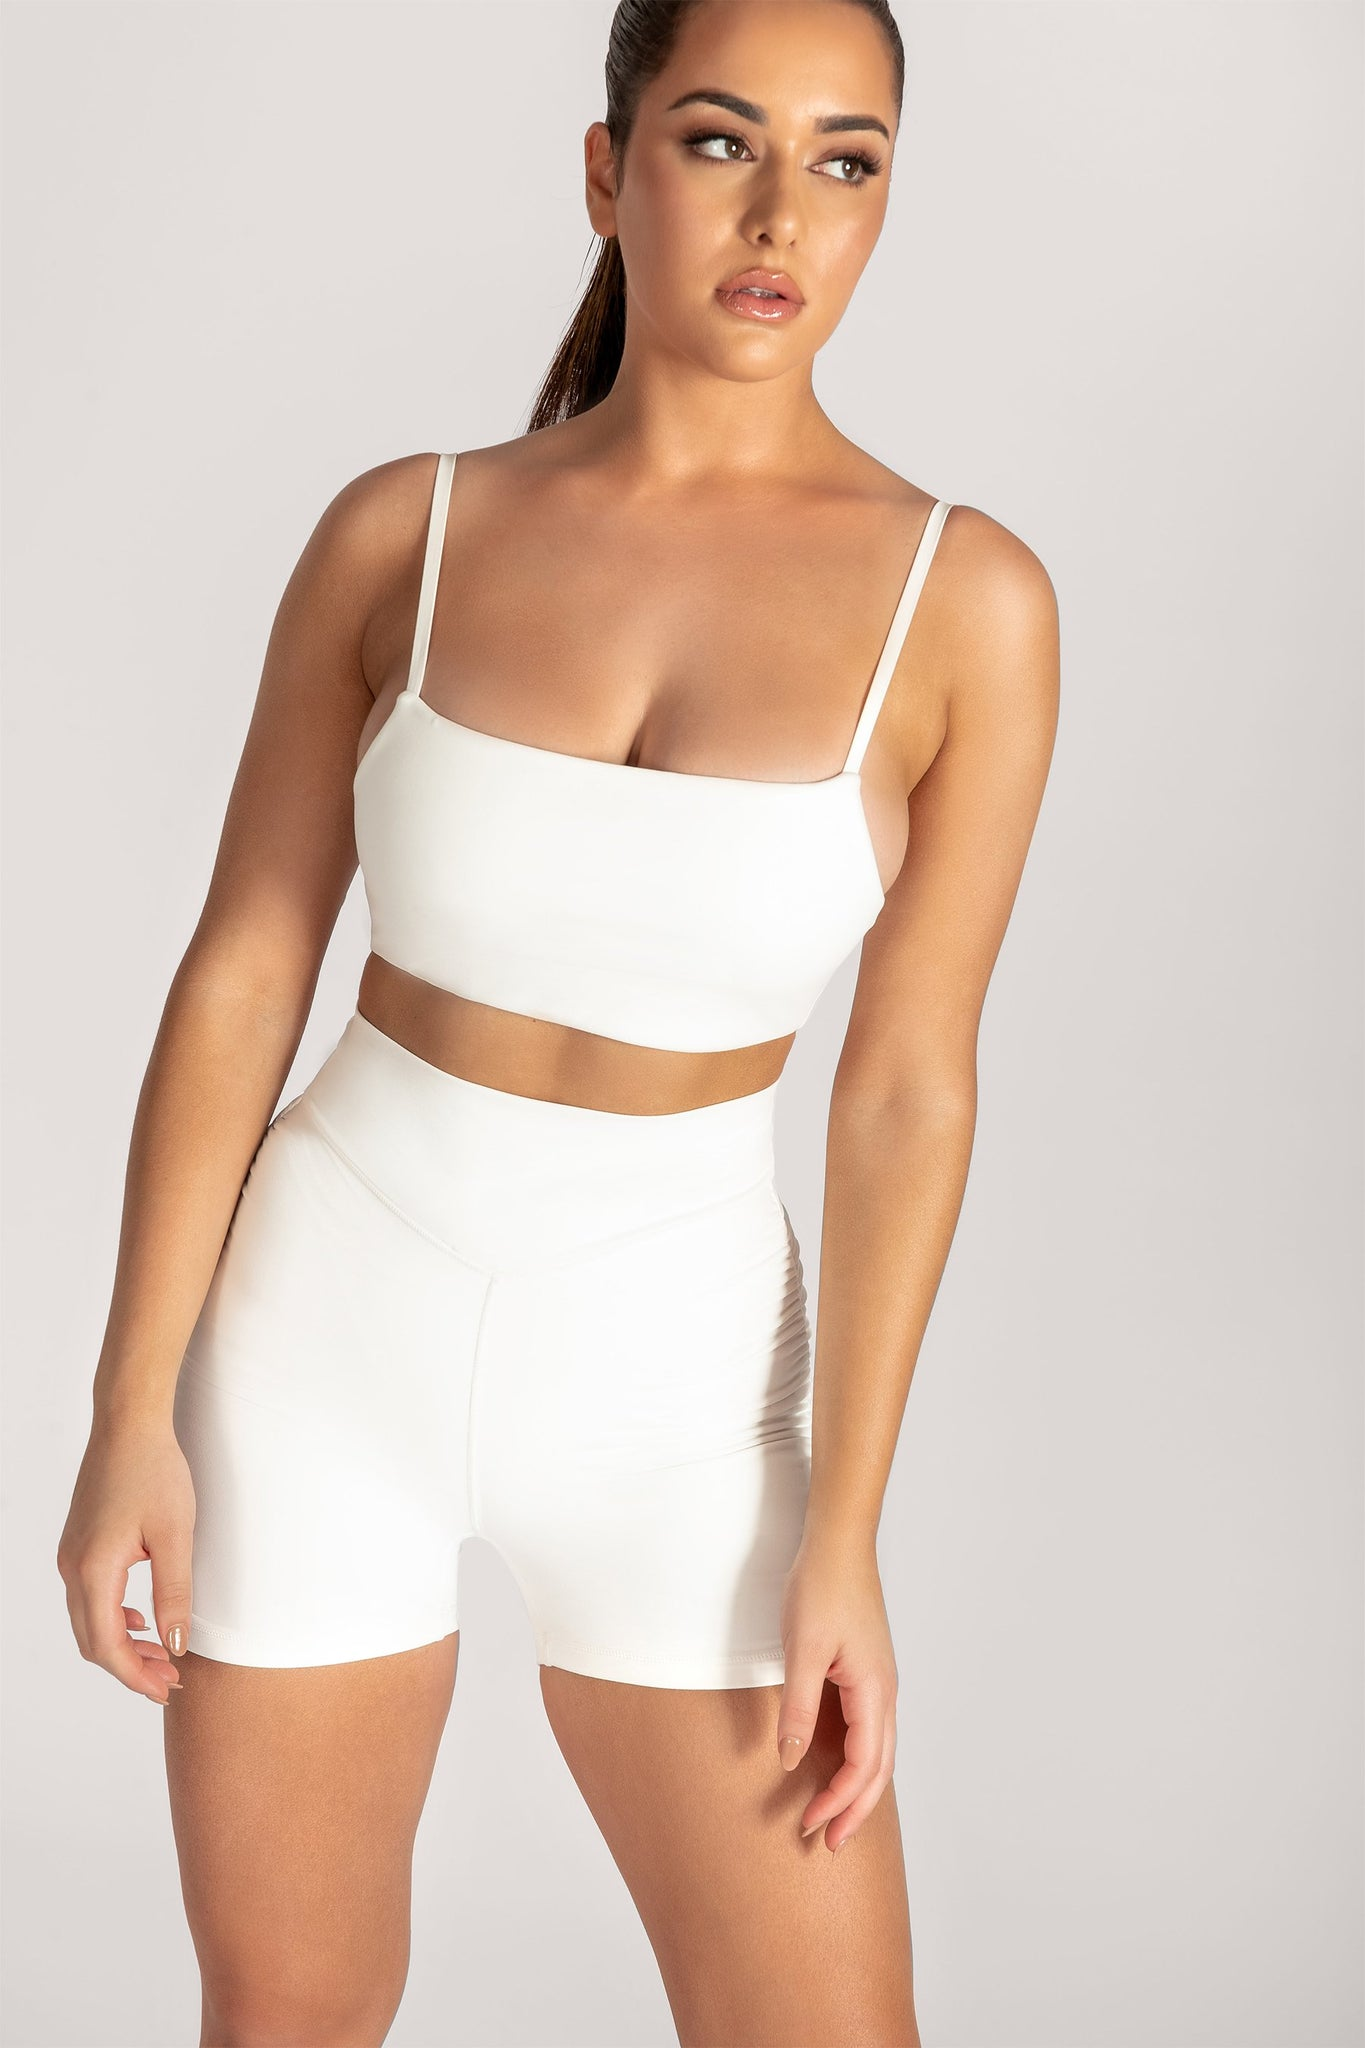 Asteria Thin Strap Crop Top - White - MESHKI